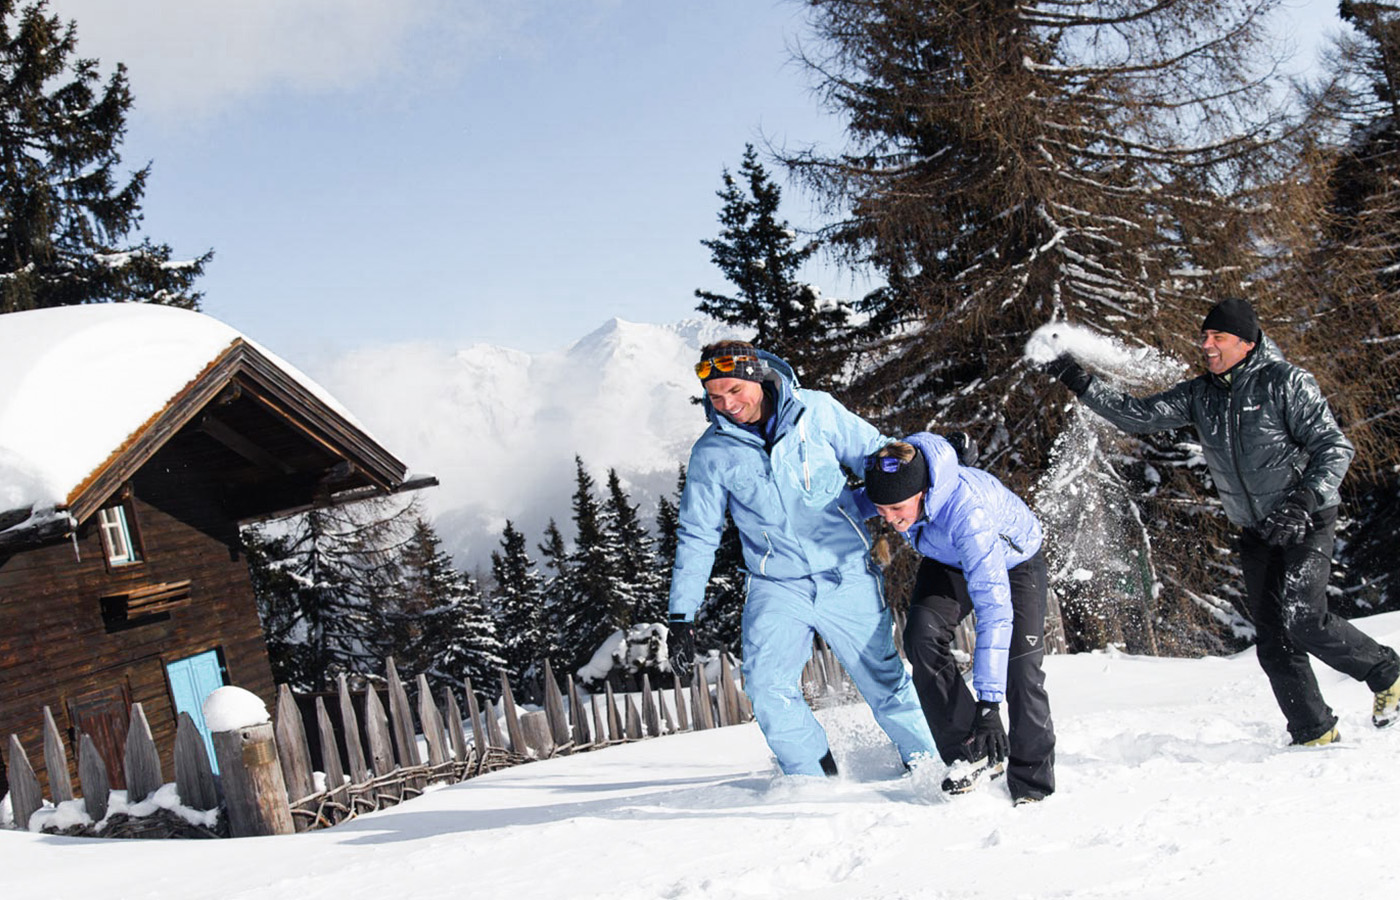 Three people having fun in the snow next to a mountain hut